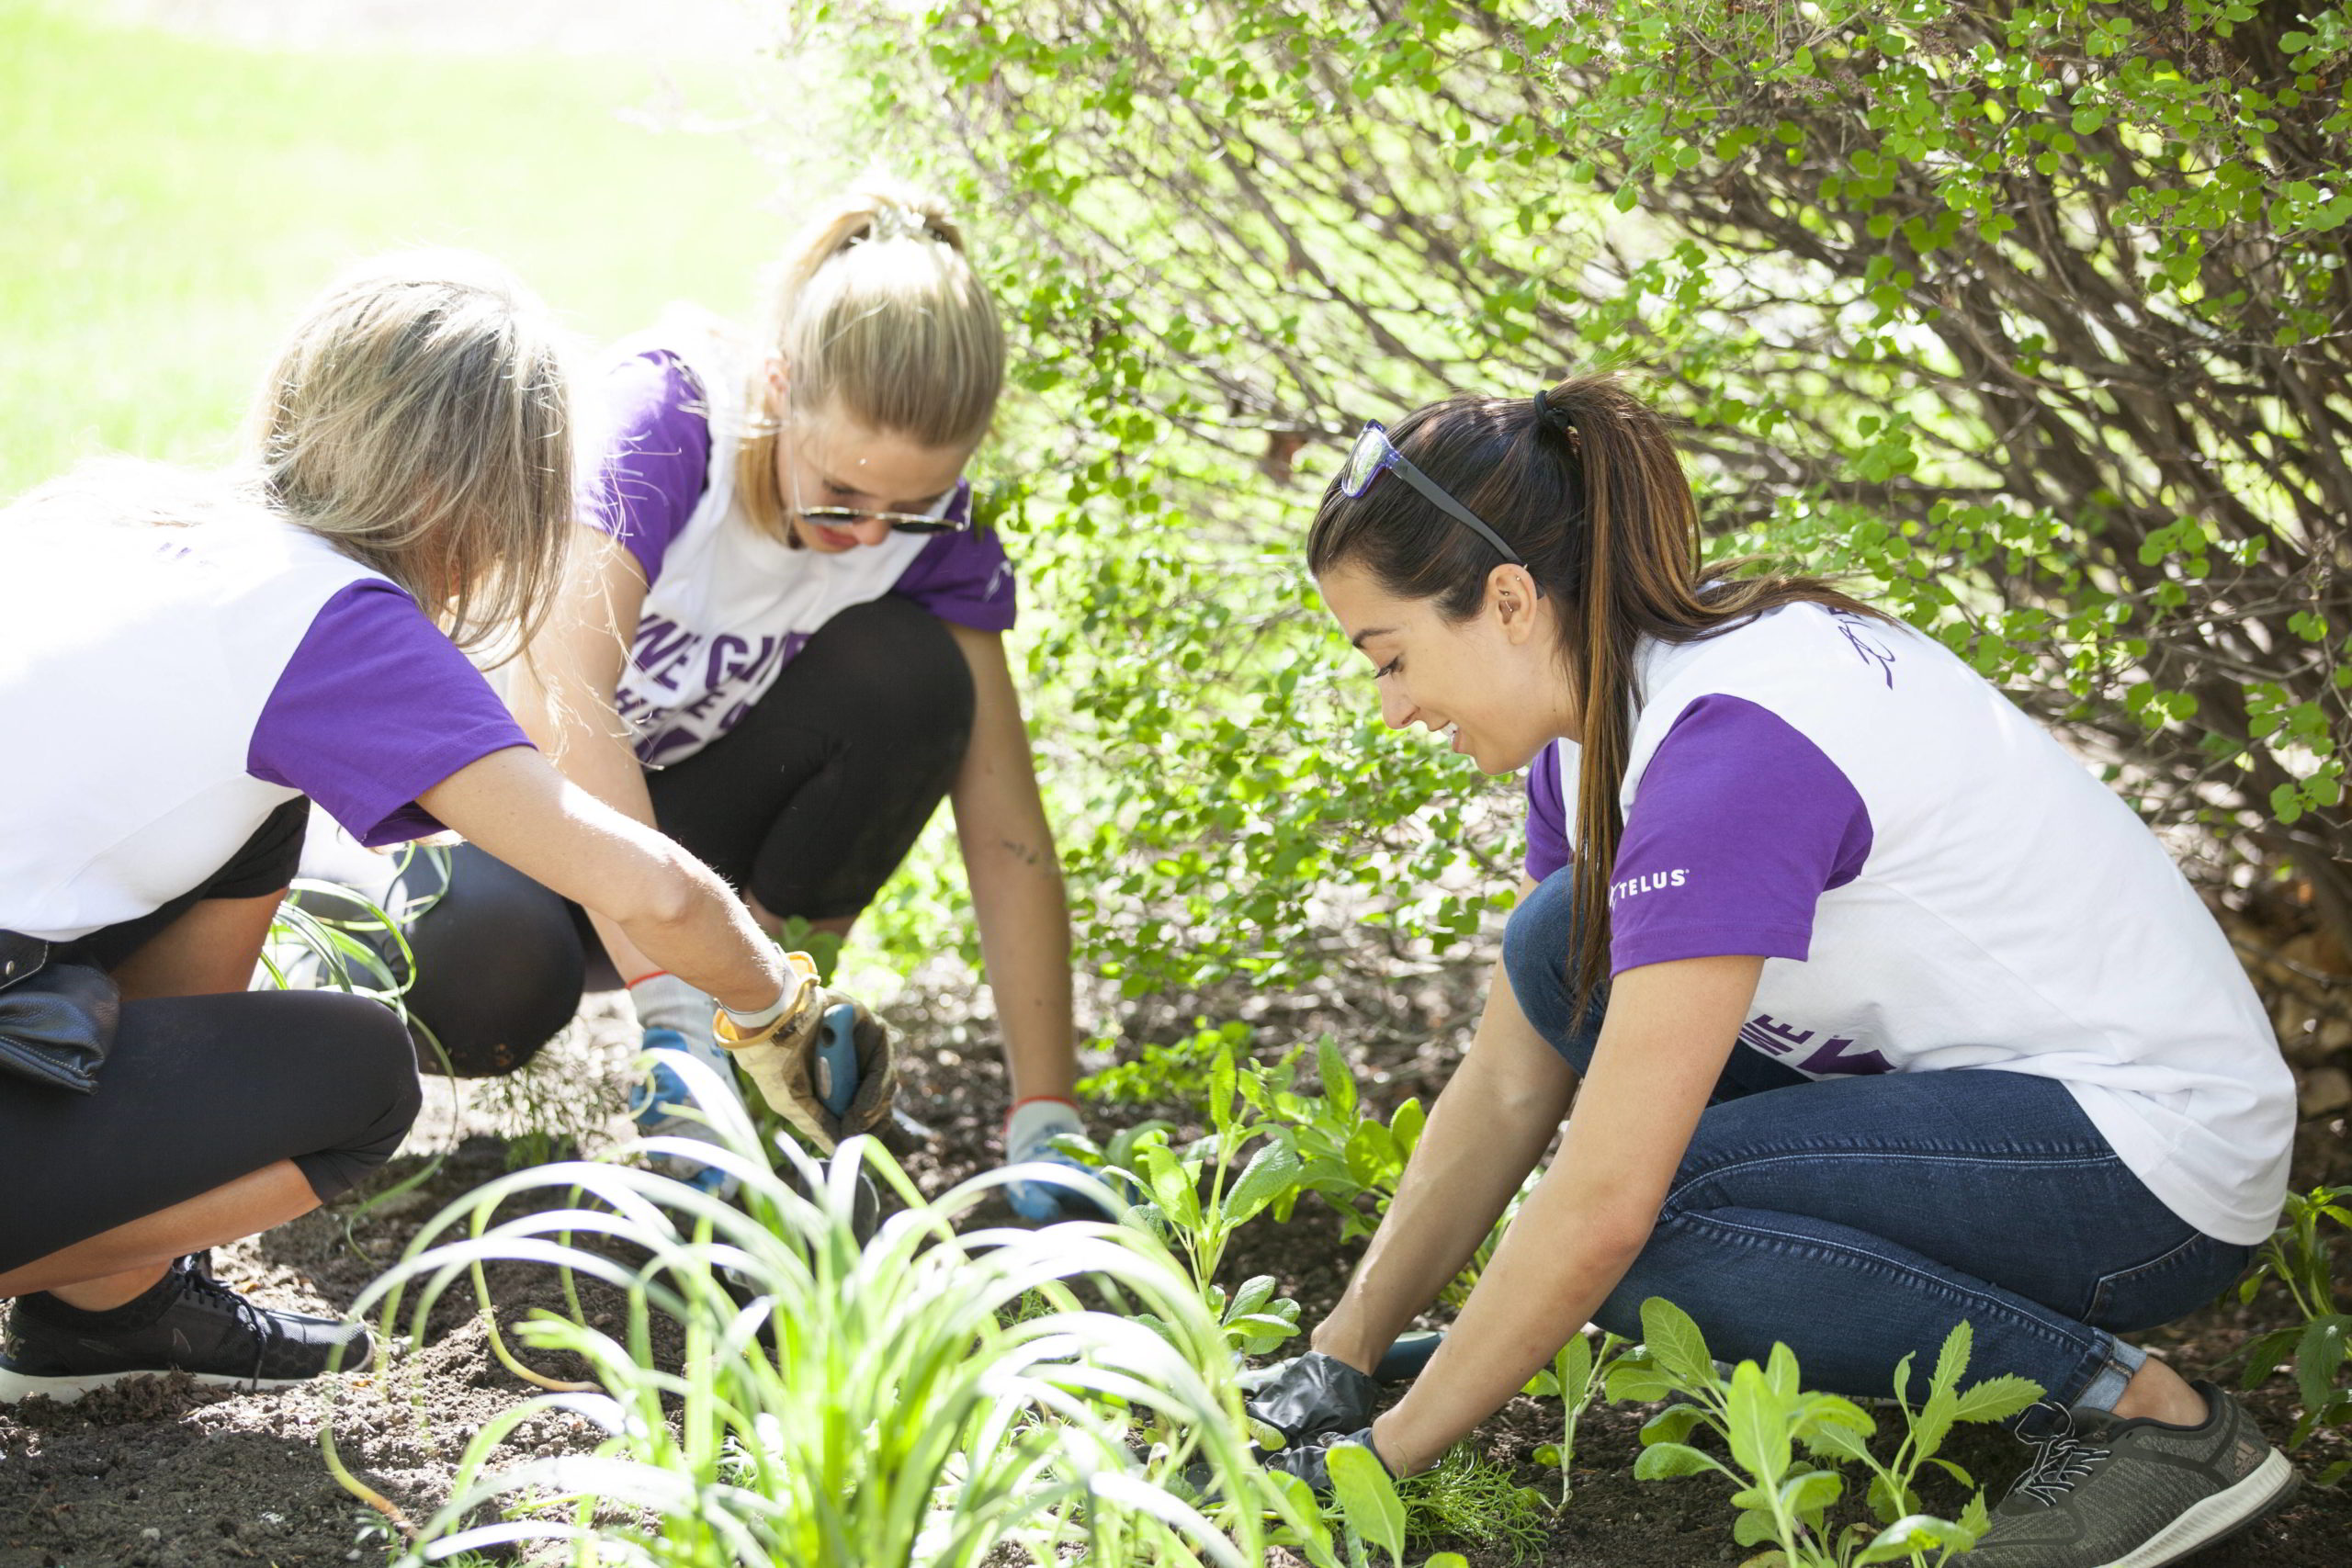 Telus employees at gardening at a partnered event